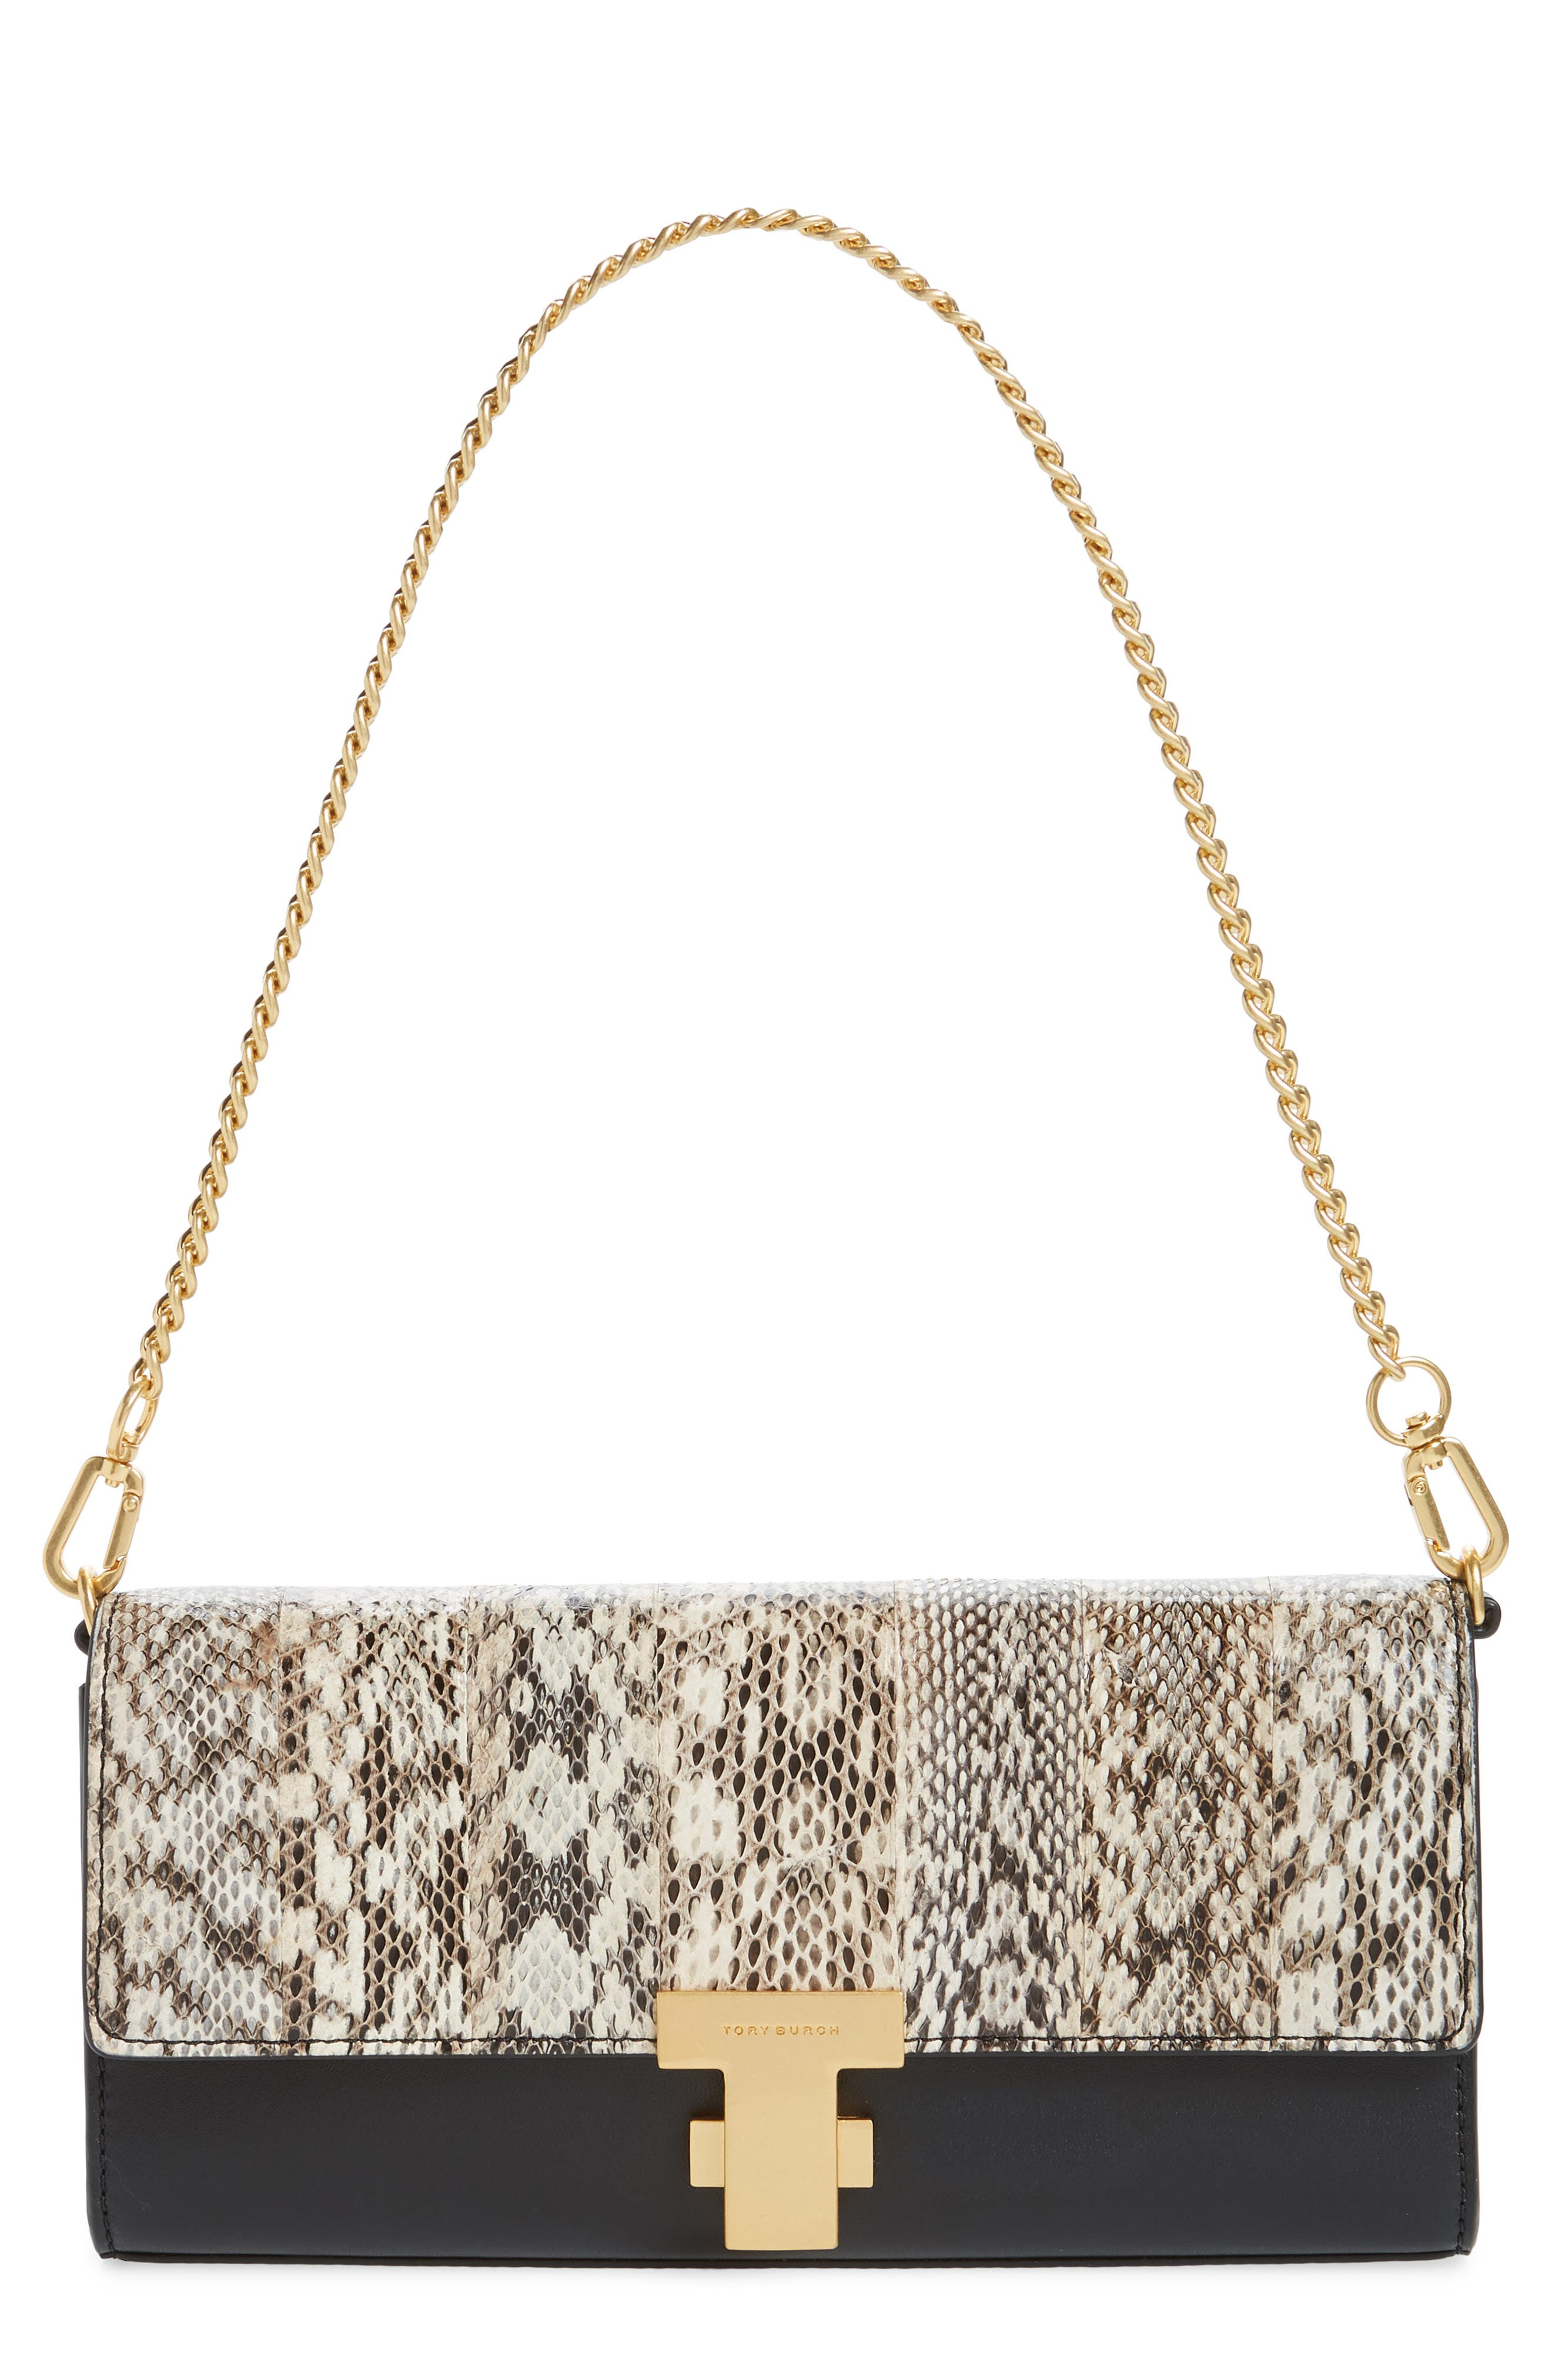 TORY BURCH Juliette Exotic Genuine Snakeskin & Leather Clutch, Main, color, NATURAL / BLACK